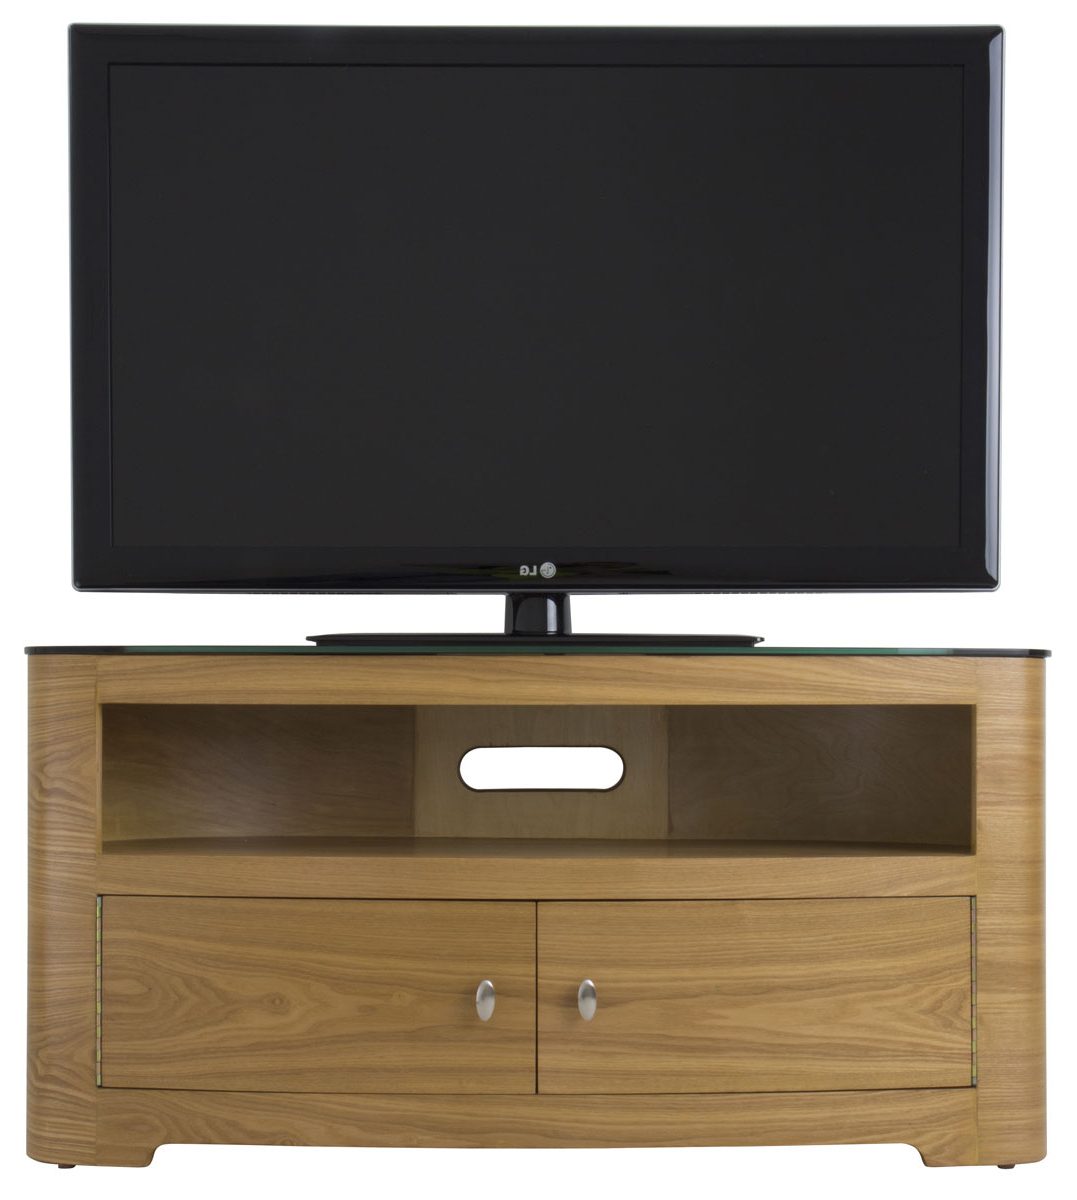 Most Recent Tv Stands Rounded Corners For Tv Stand With Rounded Corners Target Ikea Hemnes Round Orange Black (View 5 of 20)